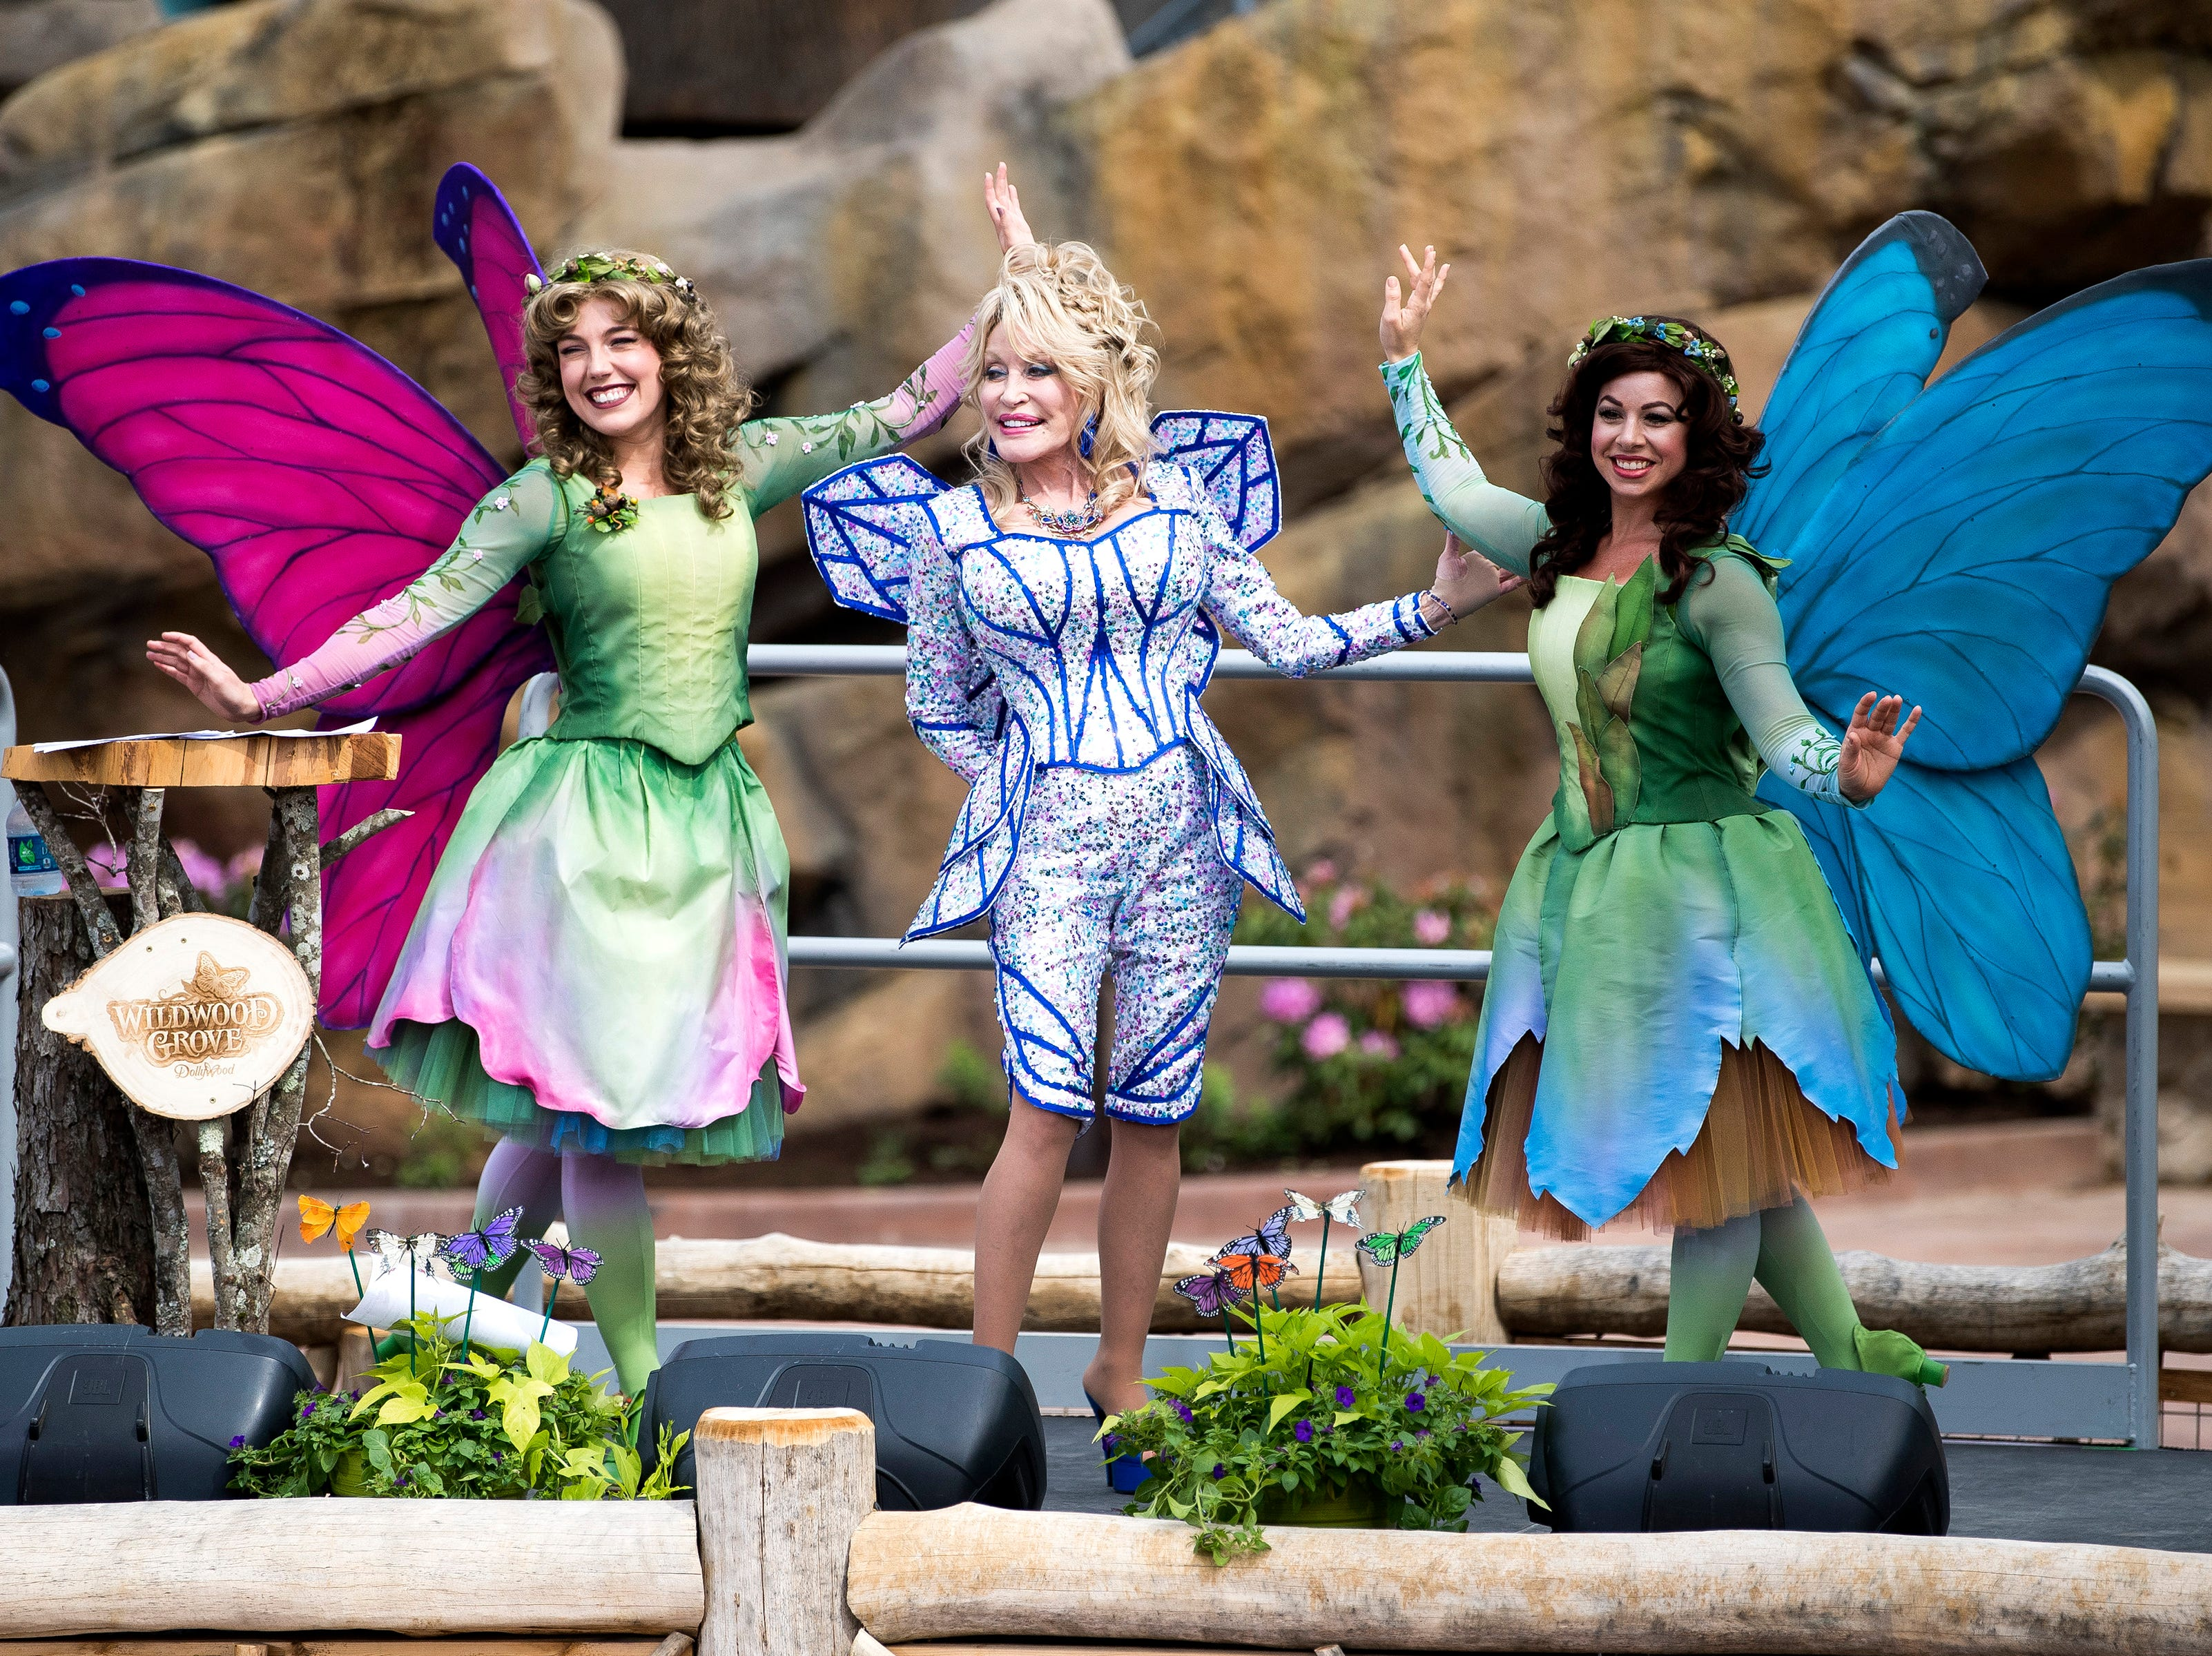 Dolly Parton poses with butterflies Flit and Flutter during the grand opening of Dollywood's new Wildwood Grove expansion on Friday, May 10, 2019.